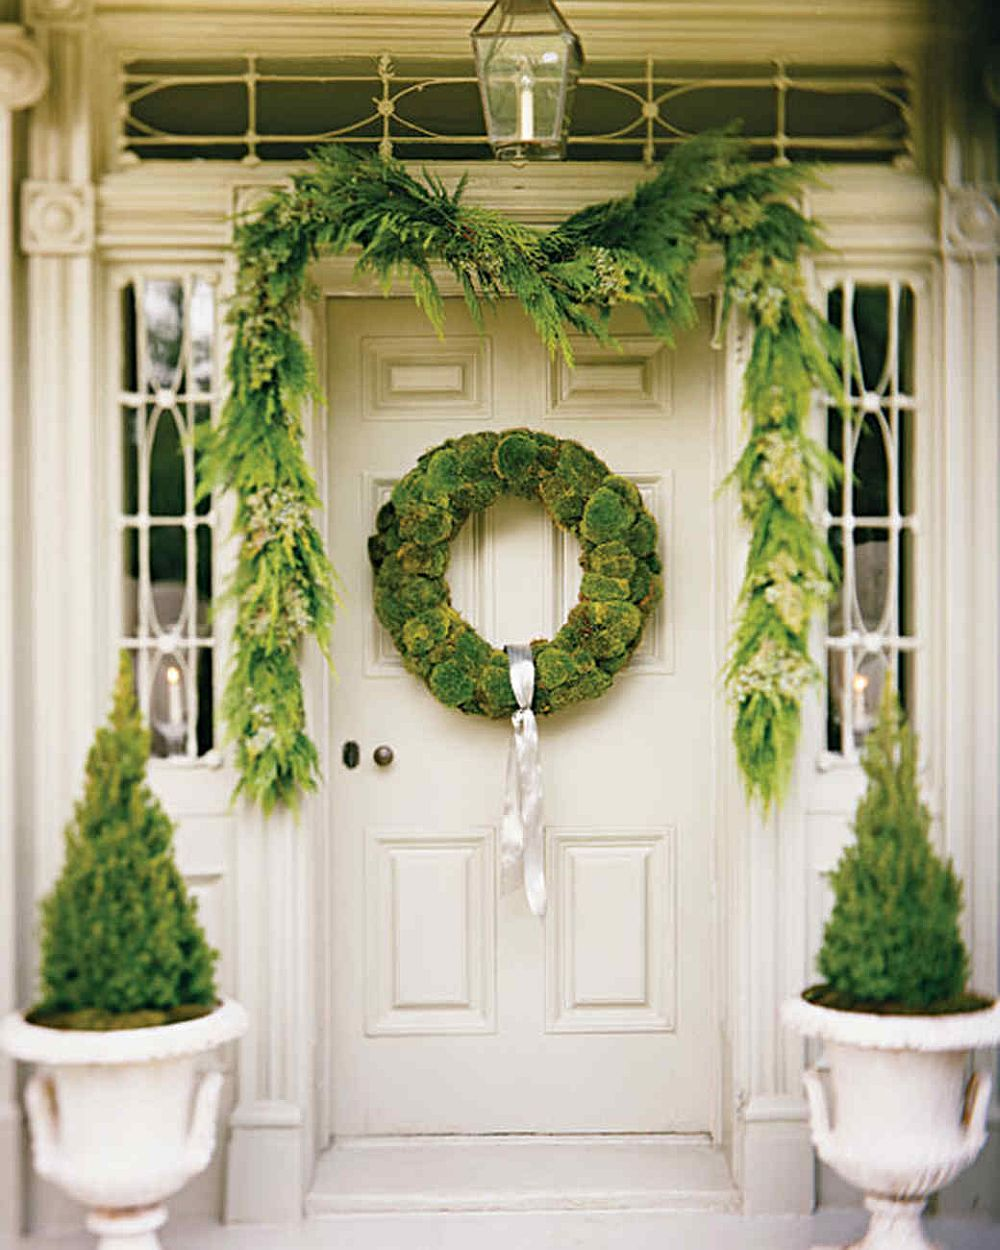 Make your own cushion moss wreath for a green Christmas